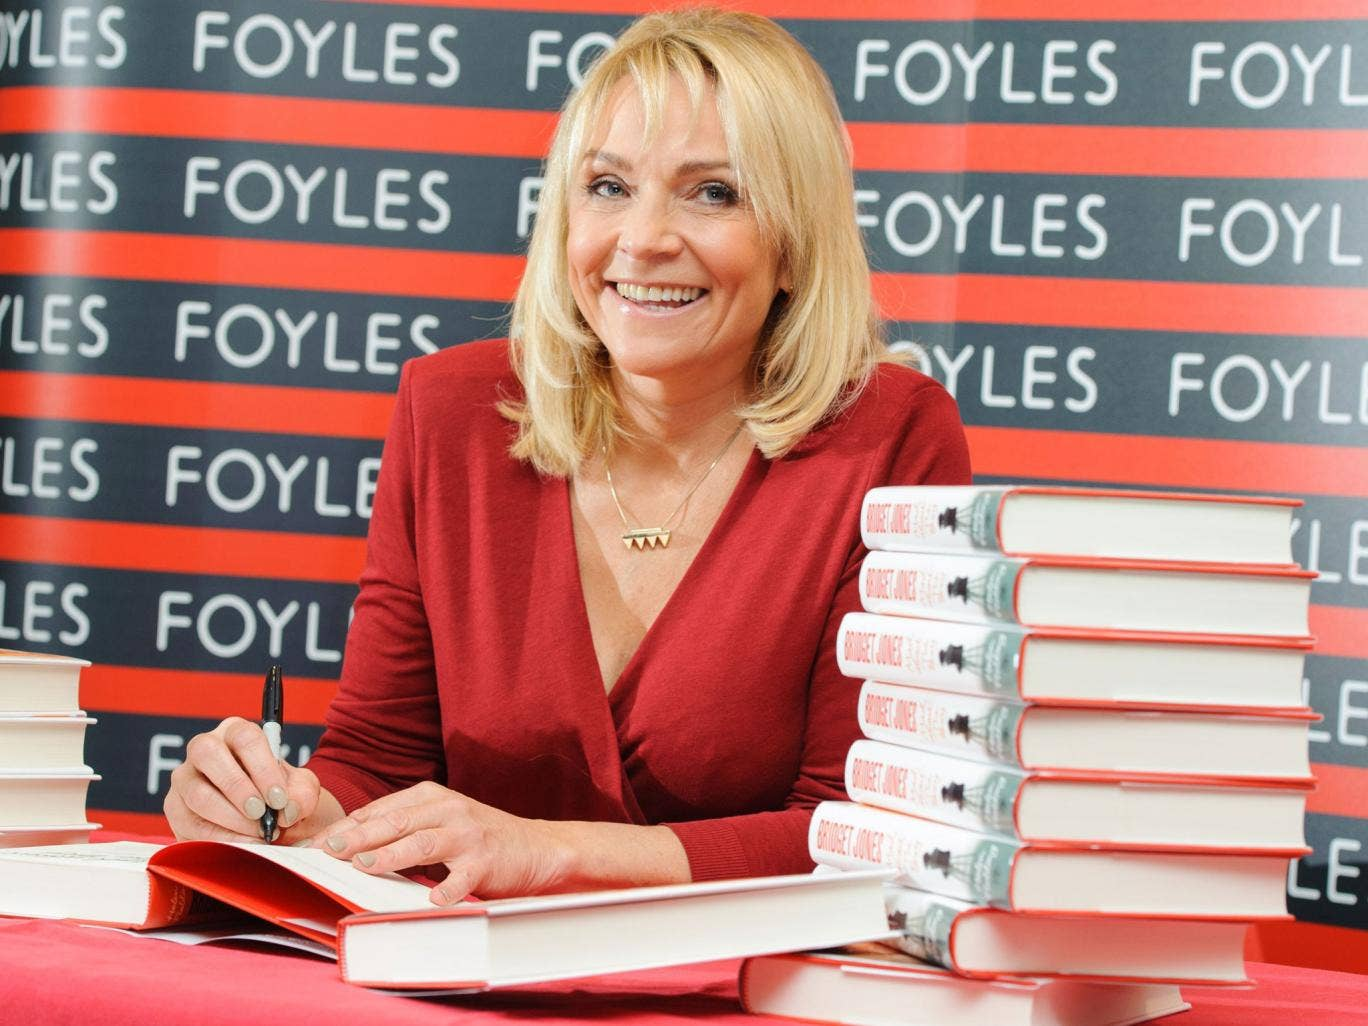 Helen Fielding signs copies of her latest Bridget Jones novel at Foyles in central London